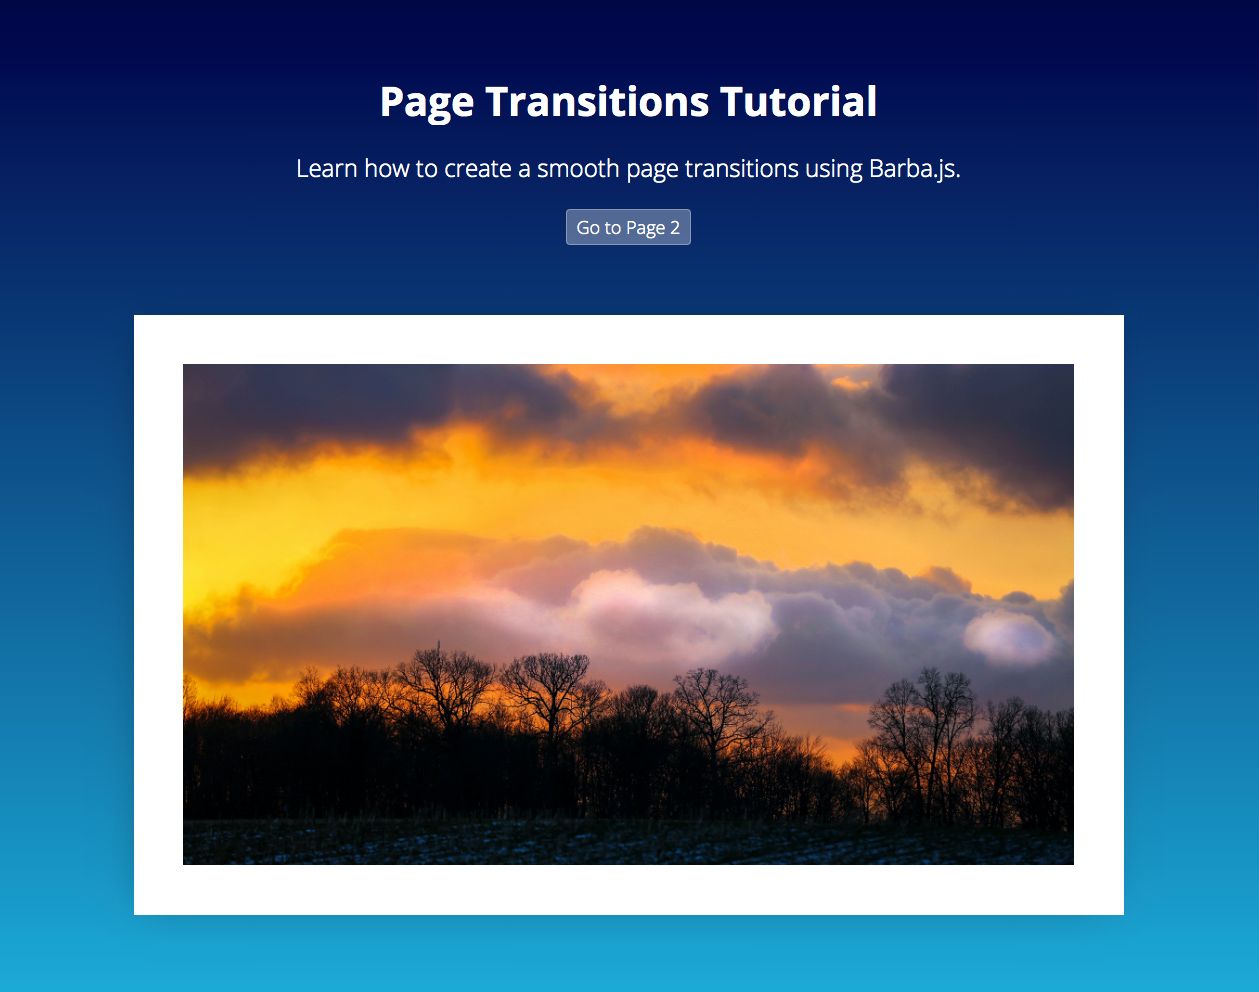 Page Transitions Tuturial